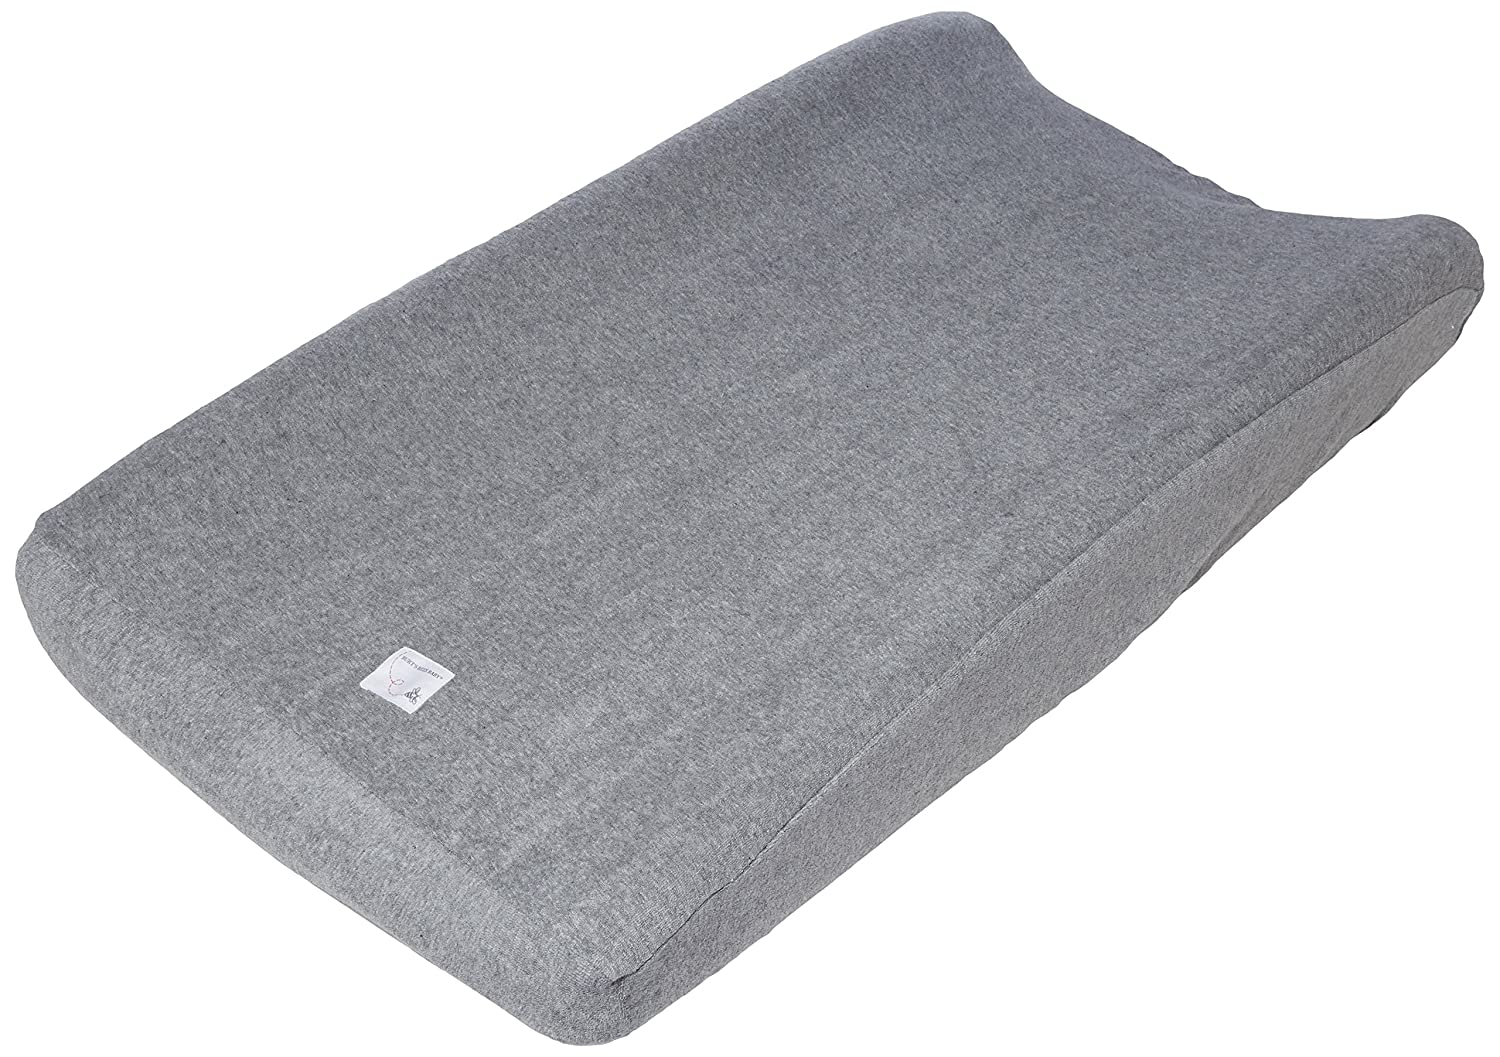 "Burt's Bees Baby Knit Terry Changing Pad Cover - 100% Organic for Standard 16"" x 32"" Changing Pad, Heather Grey Burt's Bees Baby HM10013-HTG-OS"